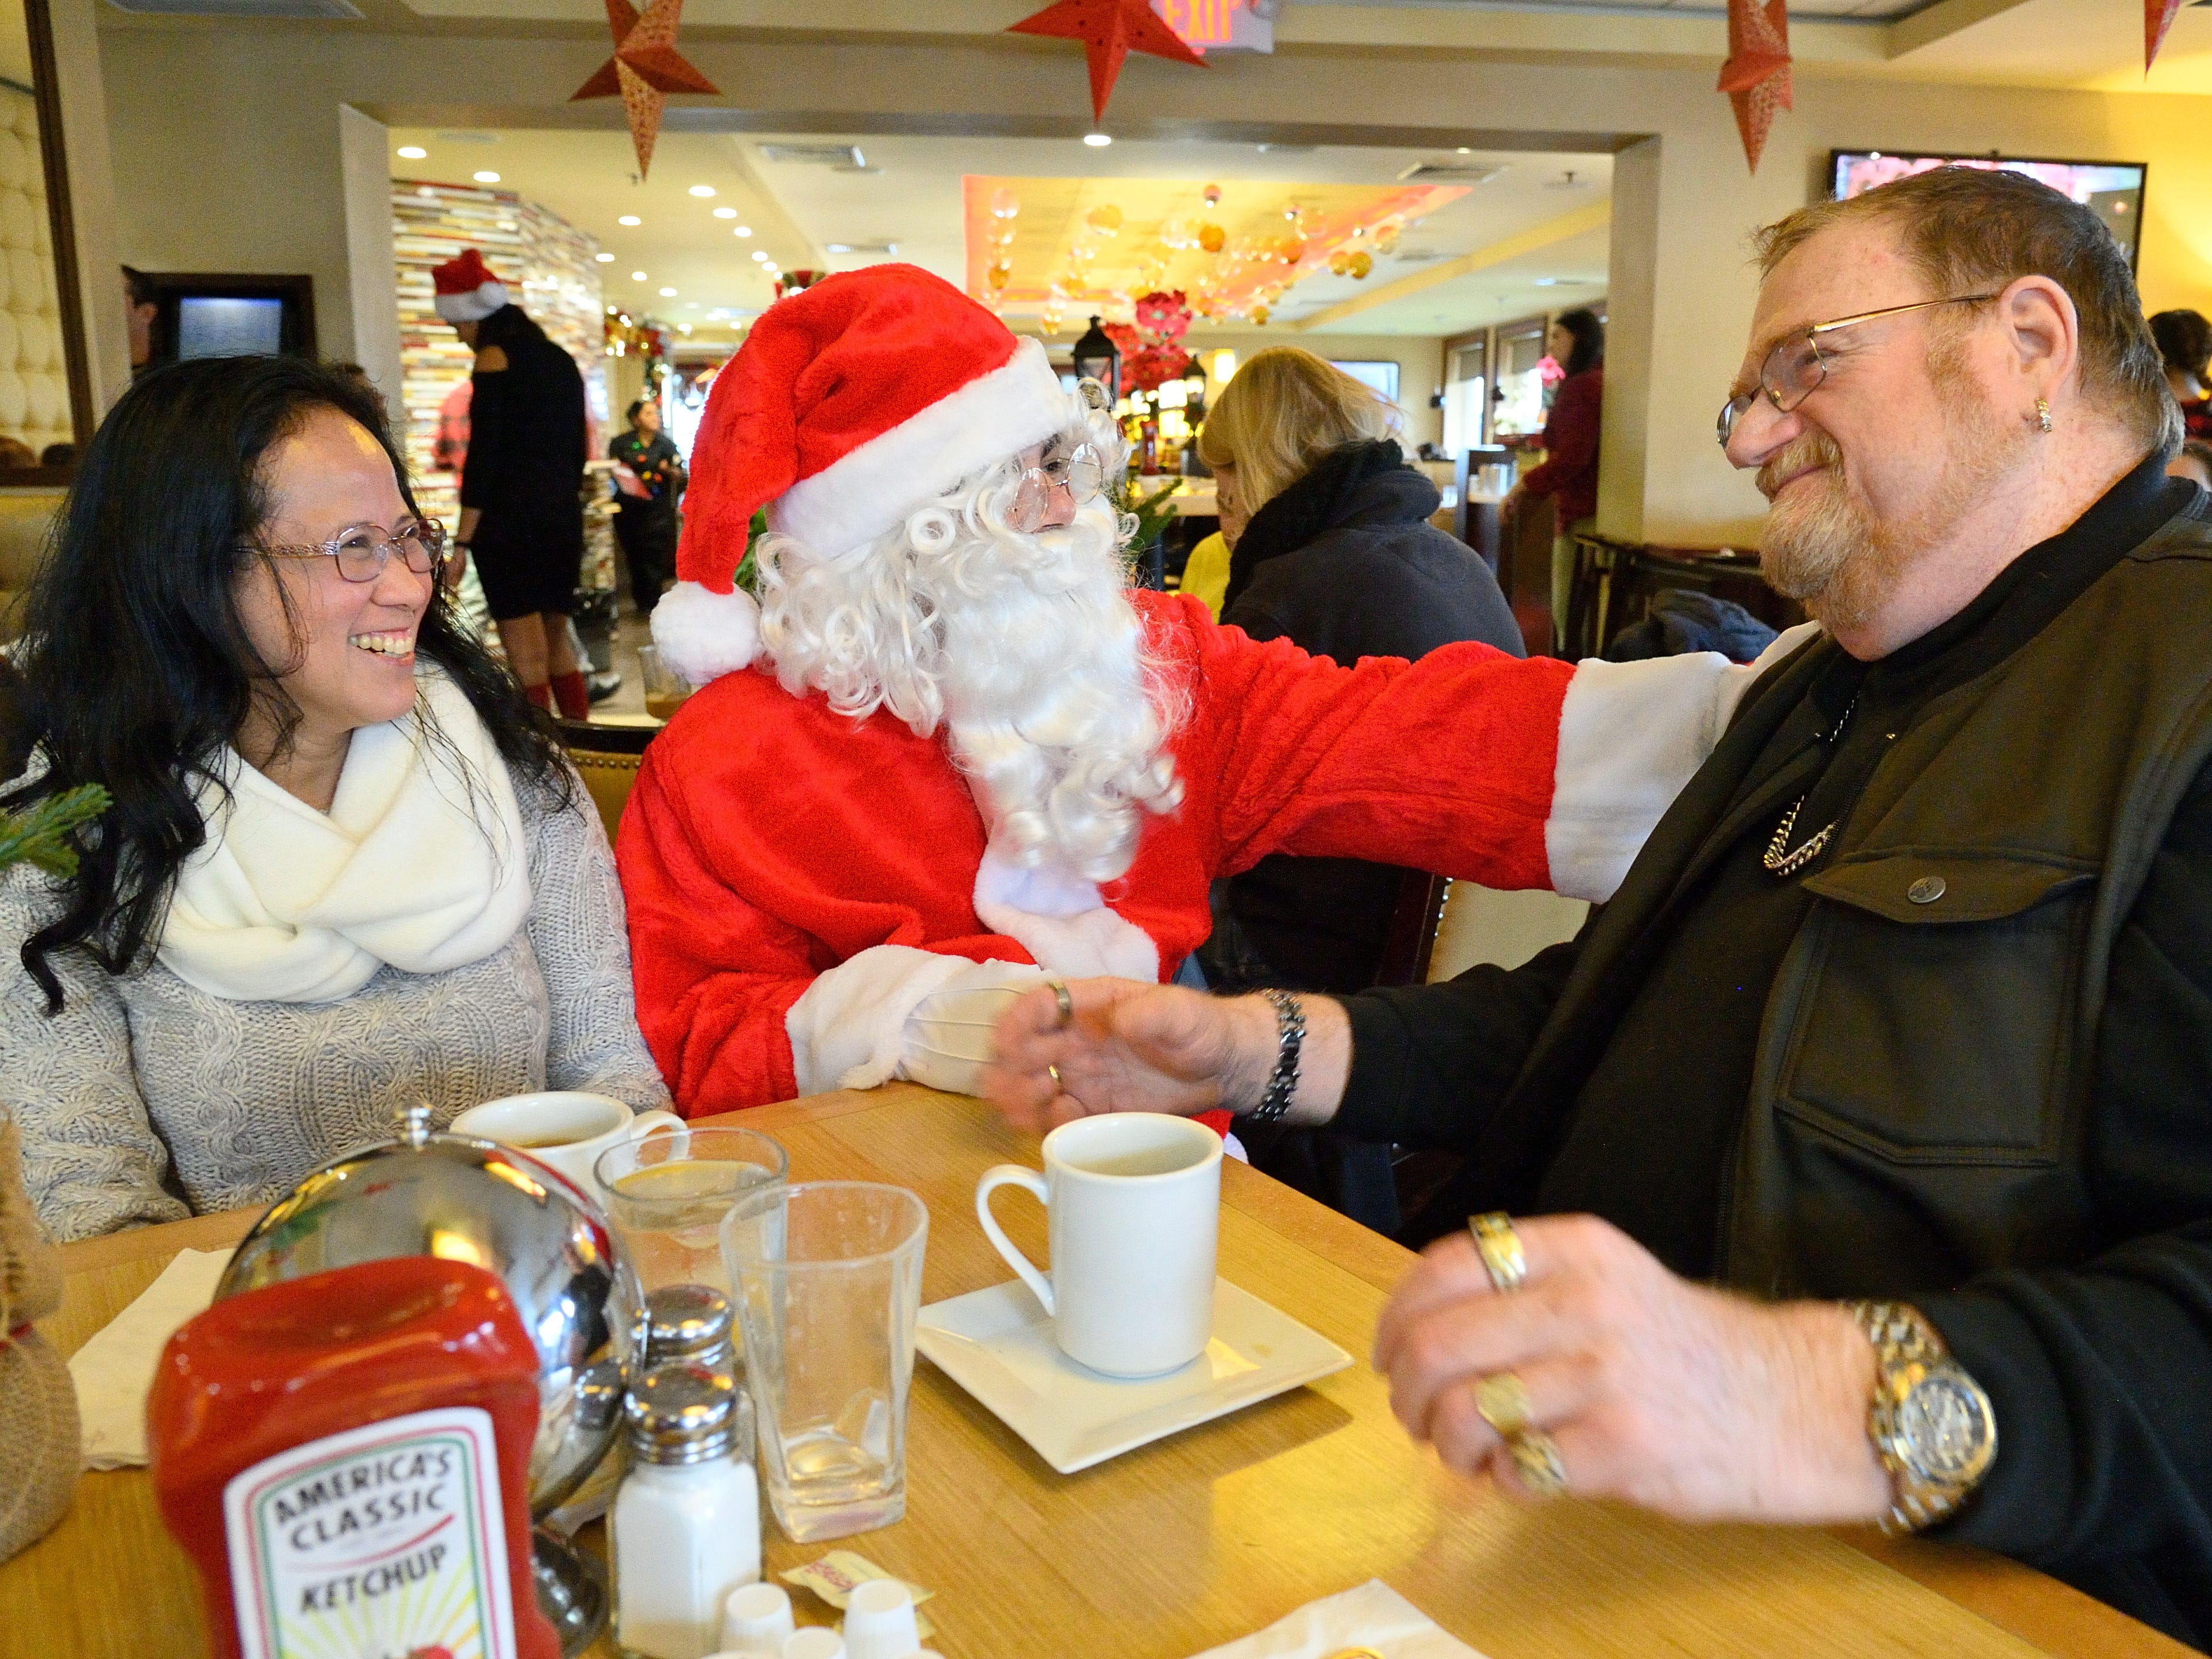 Santa greets Darlina and Bob Wood of Wallington at the Candlewyck Diner in East Rutherford on Saturday, Dec. 15, 2018